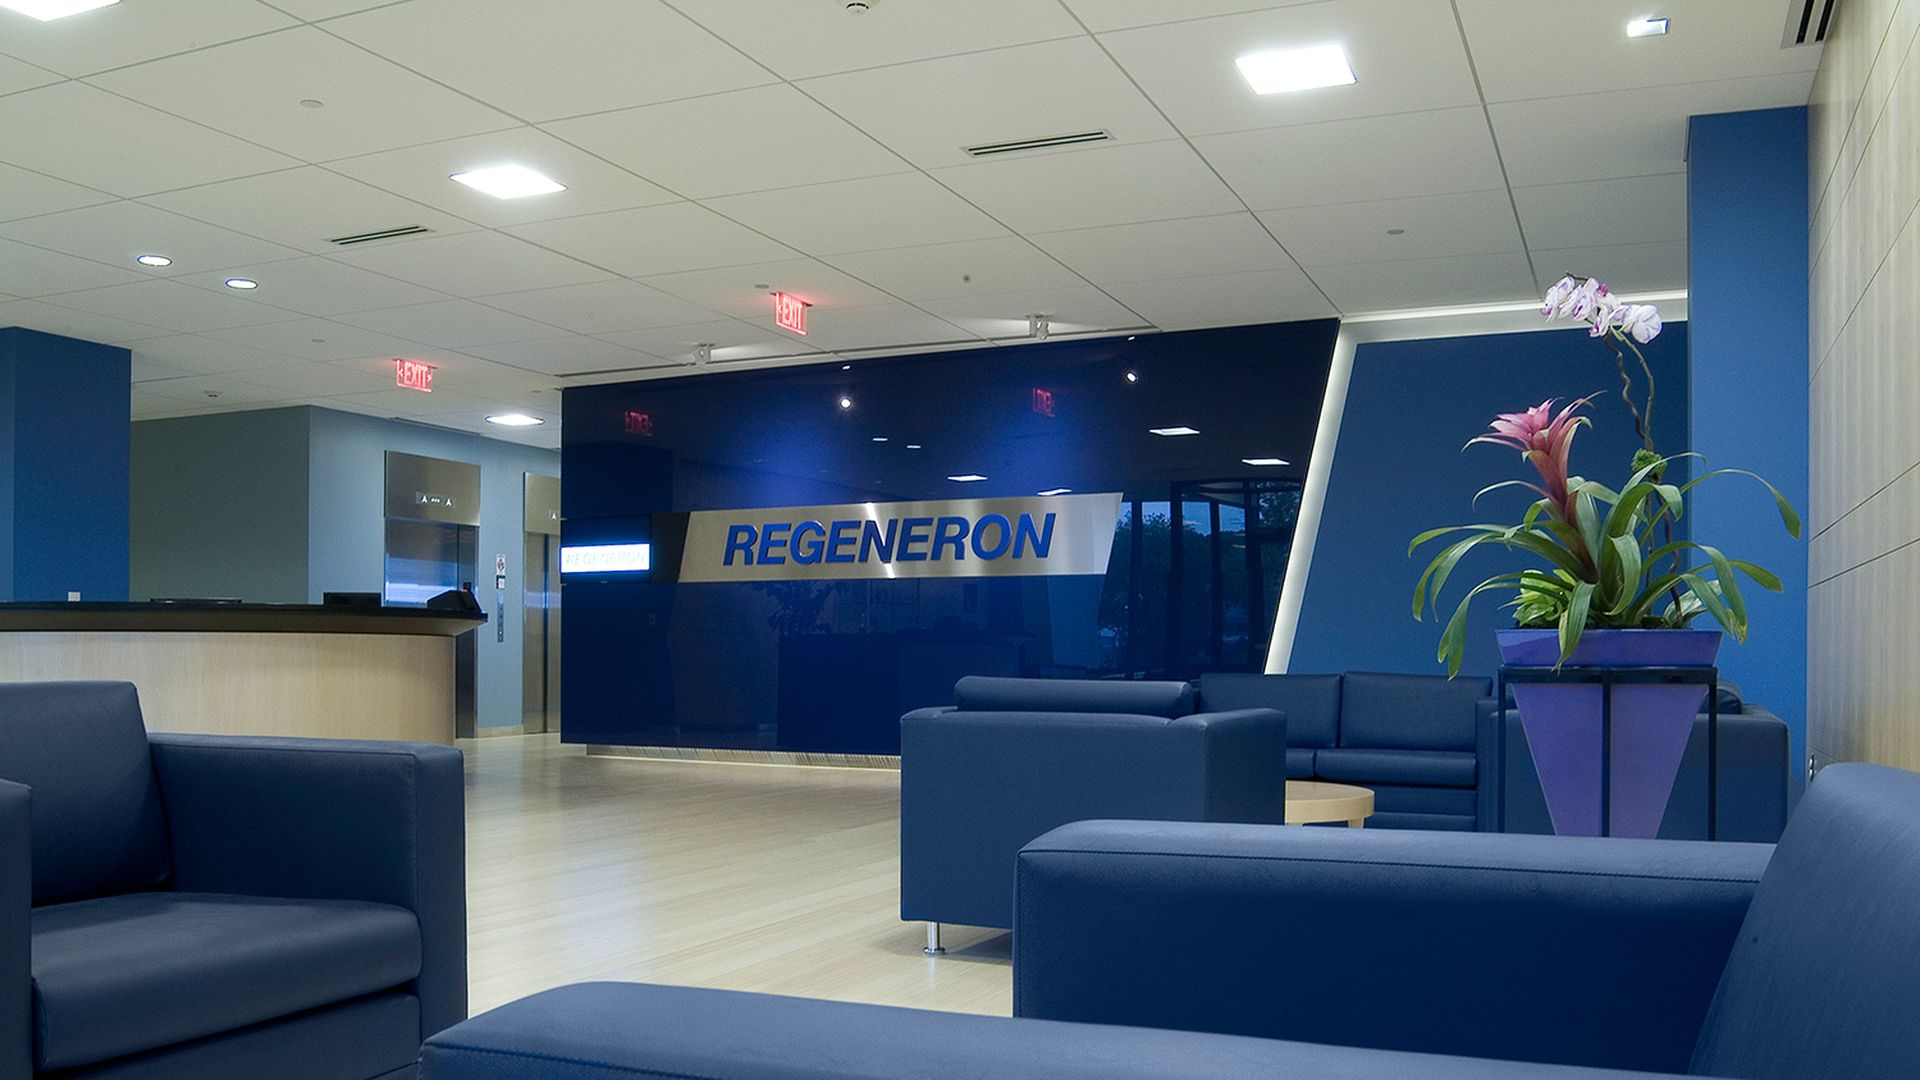 The lobby of Regeneron corporate headquarters.